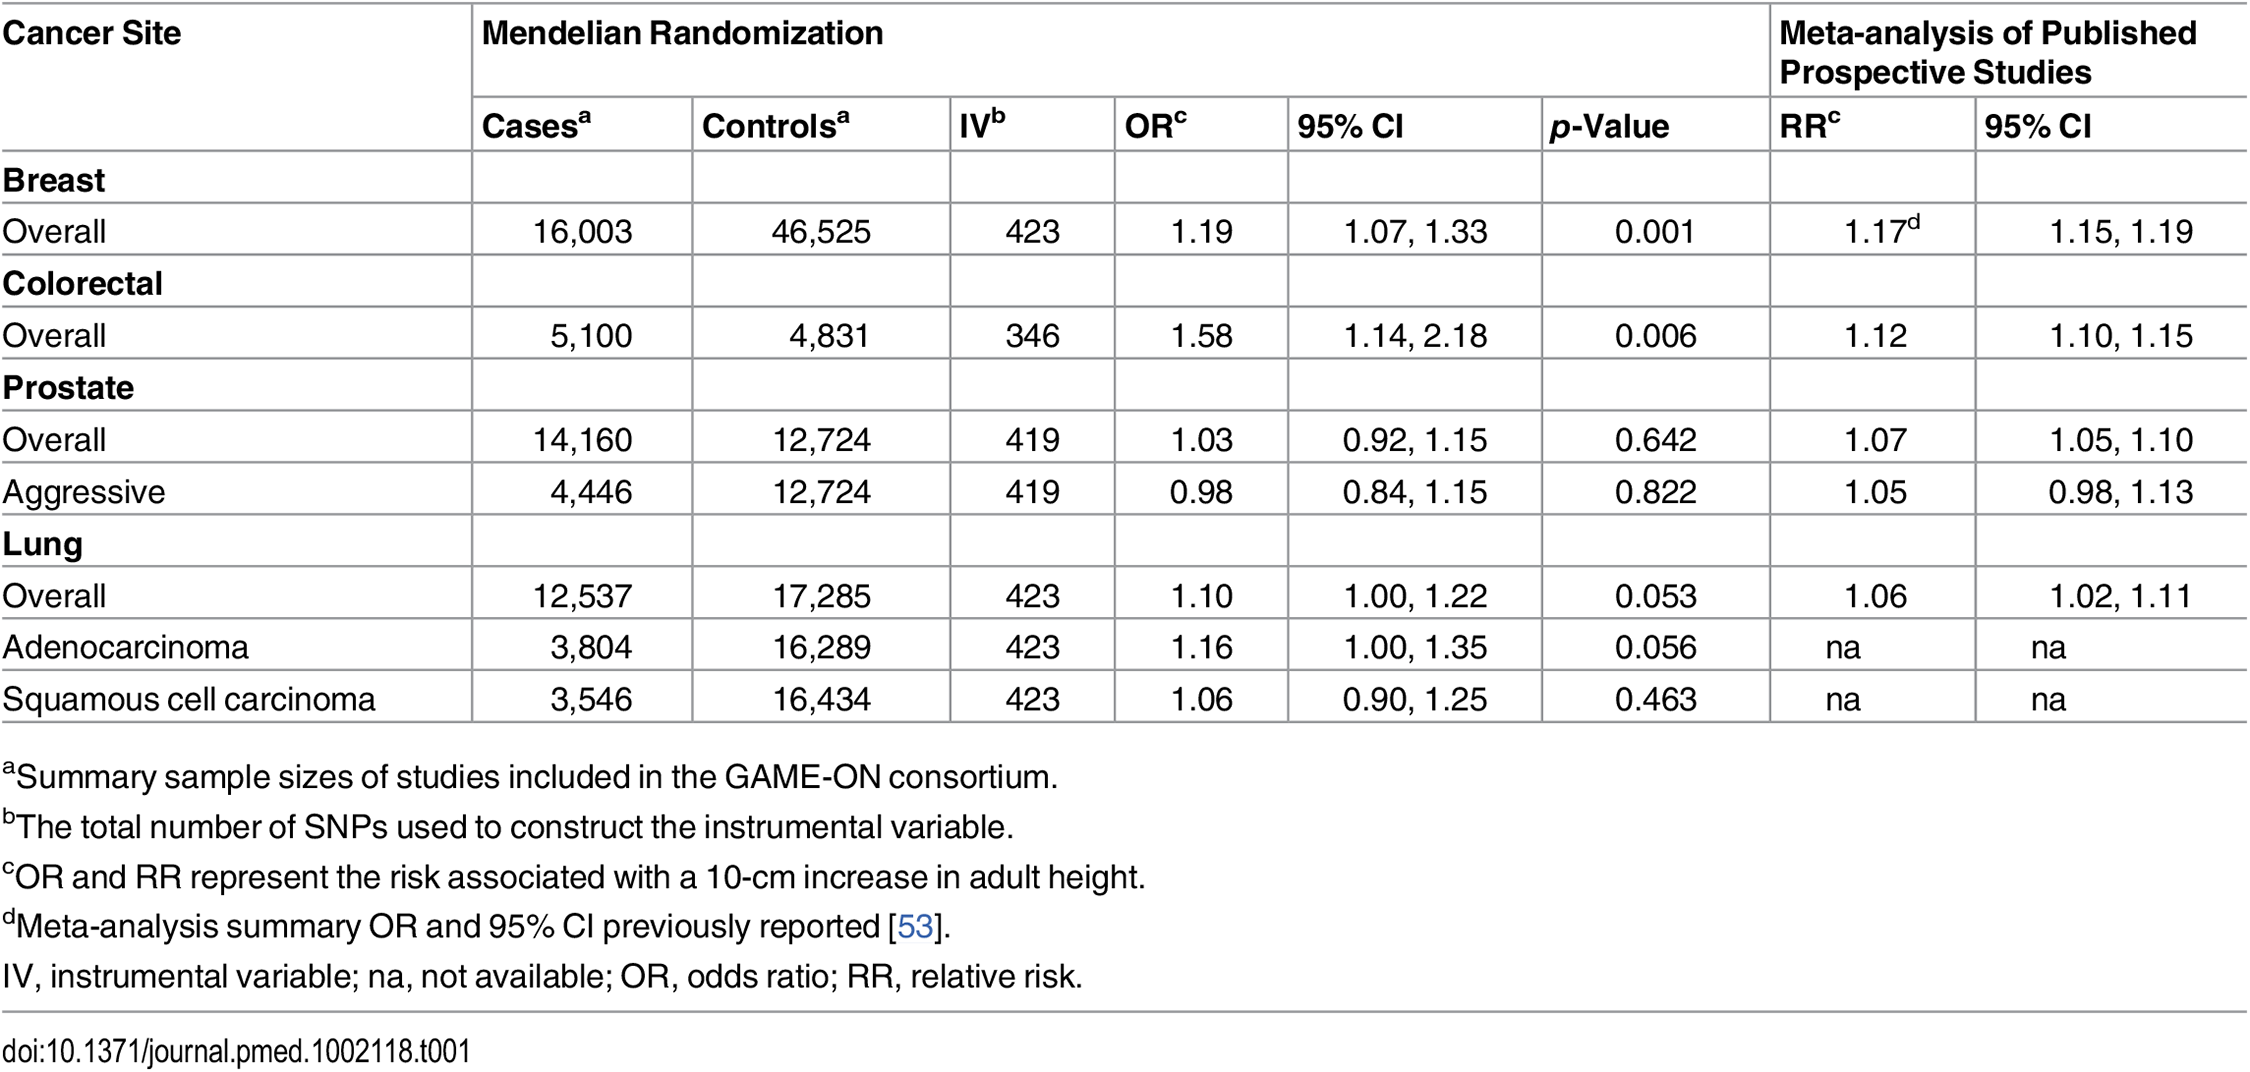 Odds ratios and 95% confidence intervals estimated from Mendelian randomization analyses compared to the summary estimates (Figs <em class=&quot;ref&quot;>2</em>–<em class=&quot;ref&quot;>4</em>) from published prospective studies for the association between adult height and cancers of the breast, colorectum, prostate, and lung.